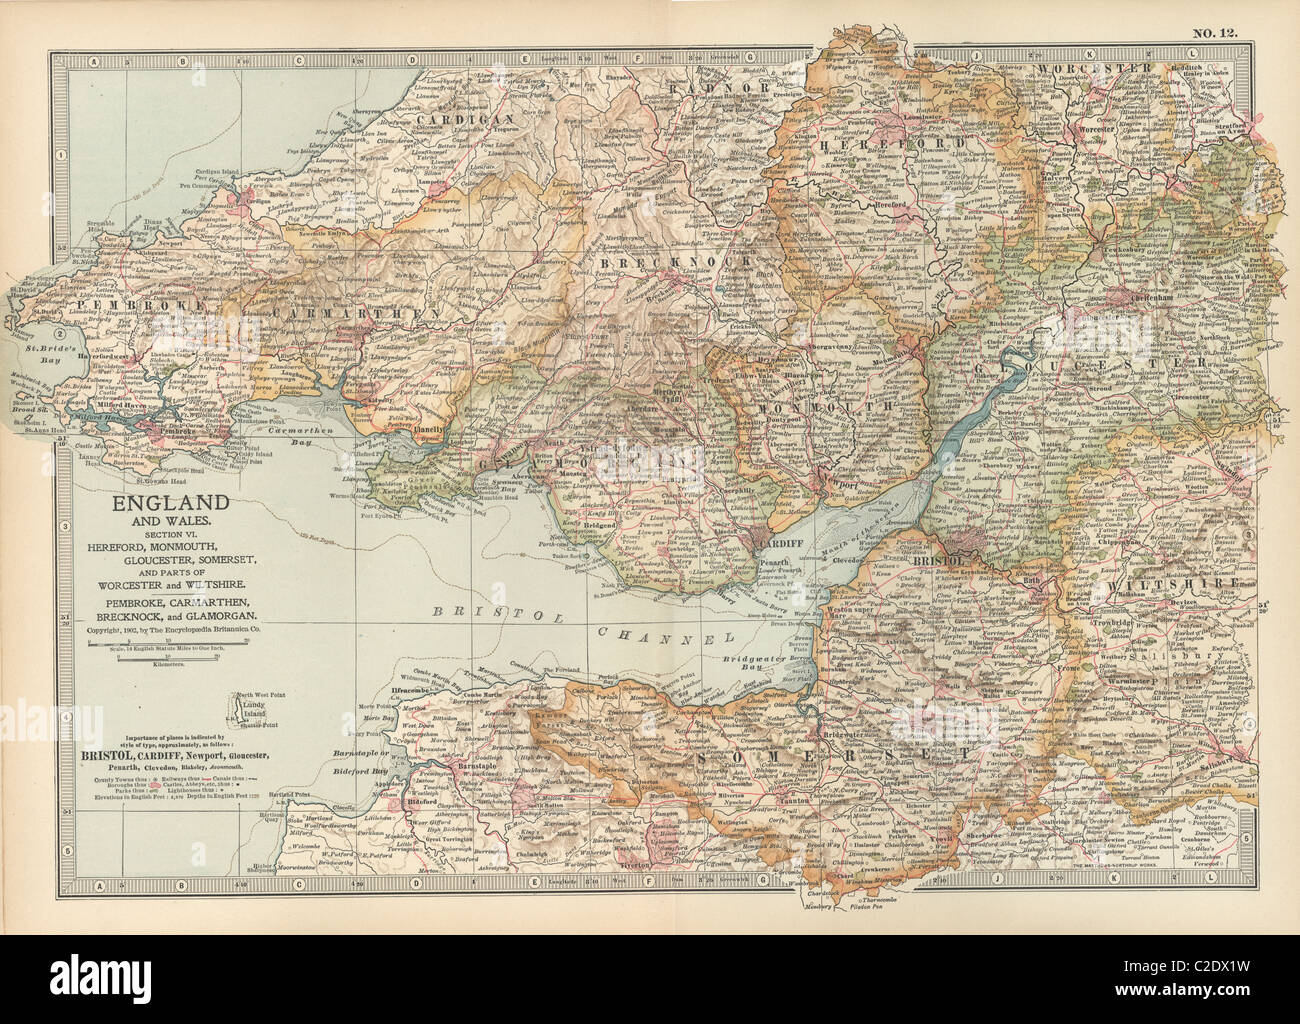 Map of England and Wales - Stock Image